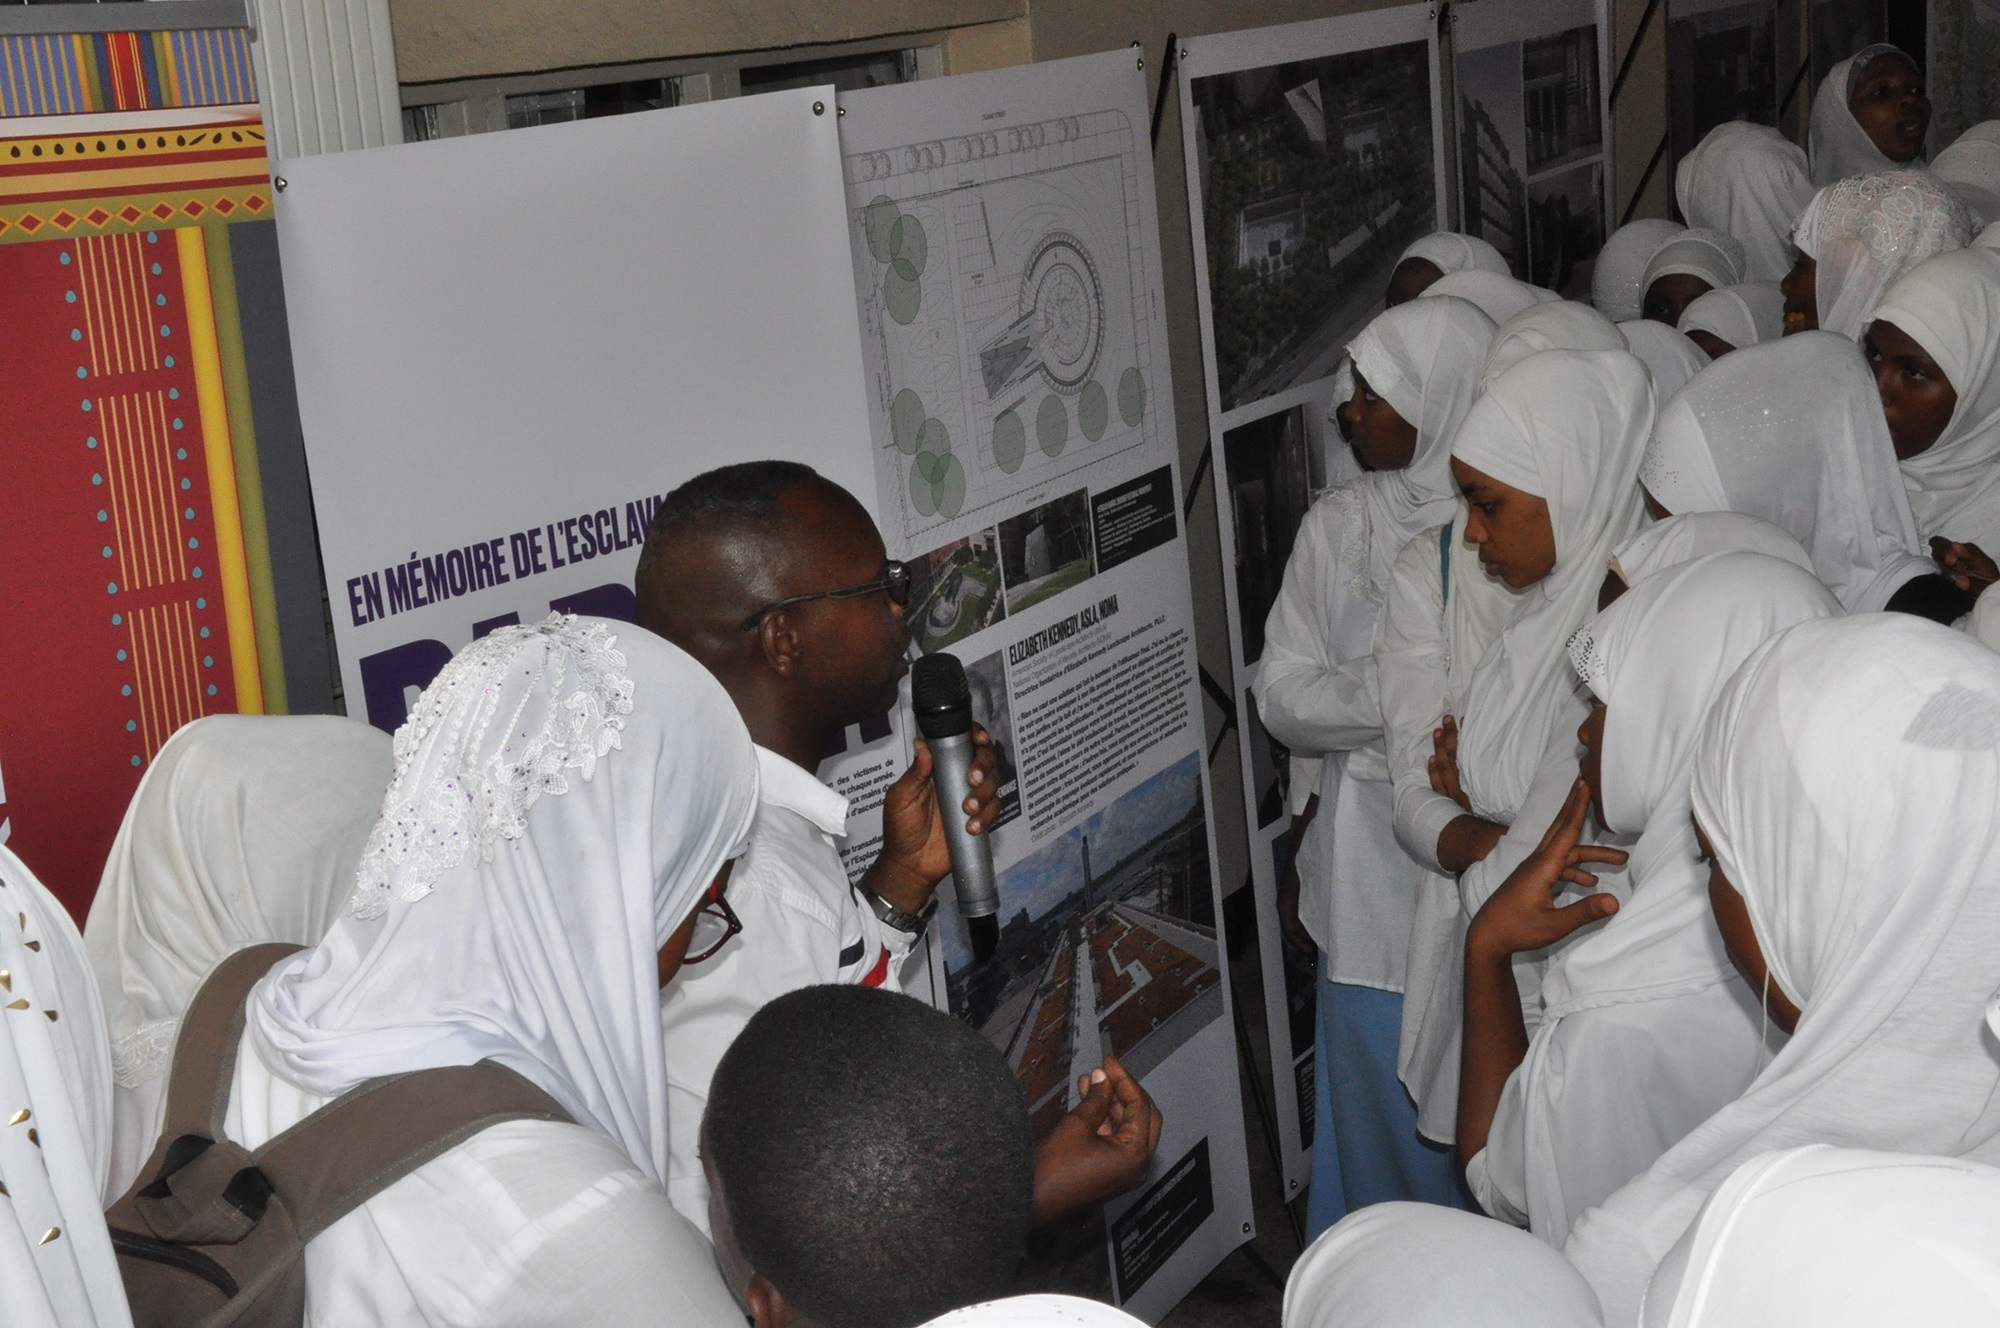 African citizens in white garb around poster boards